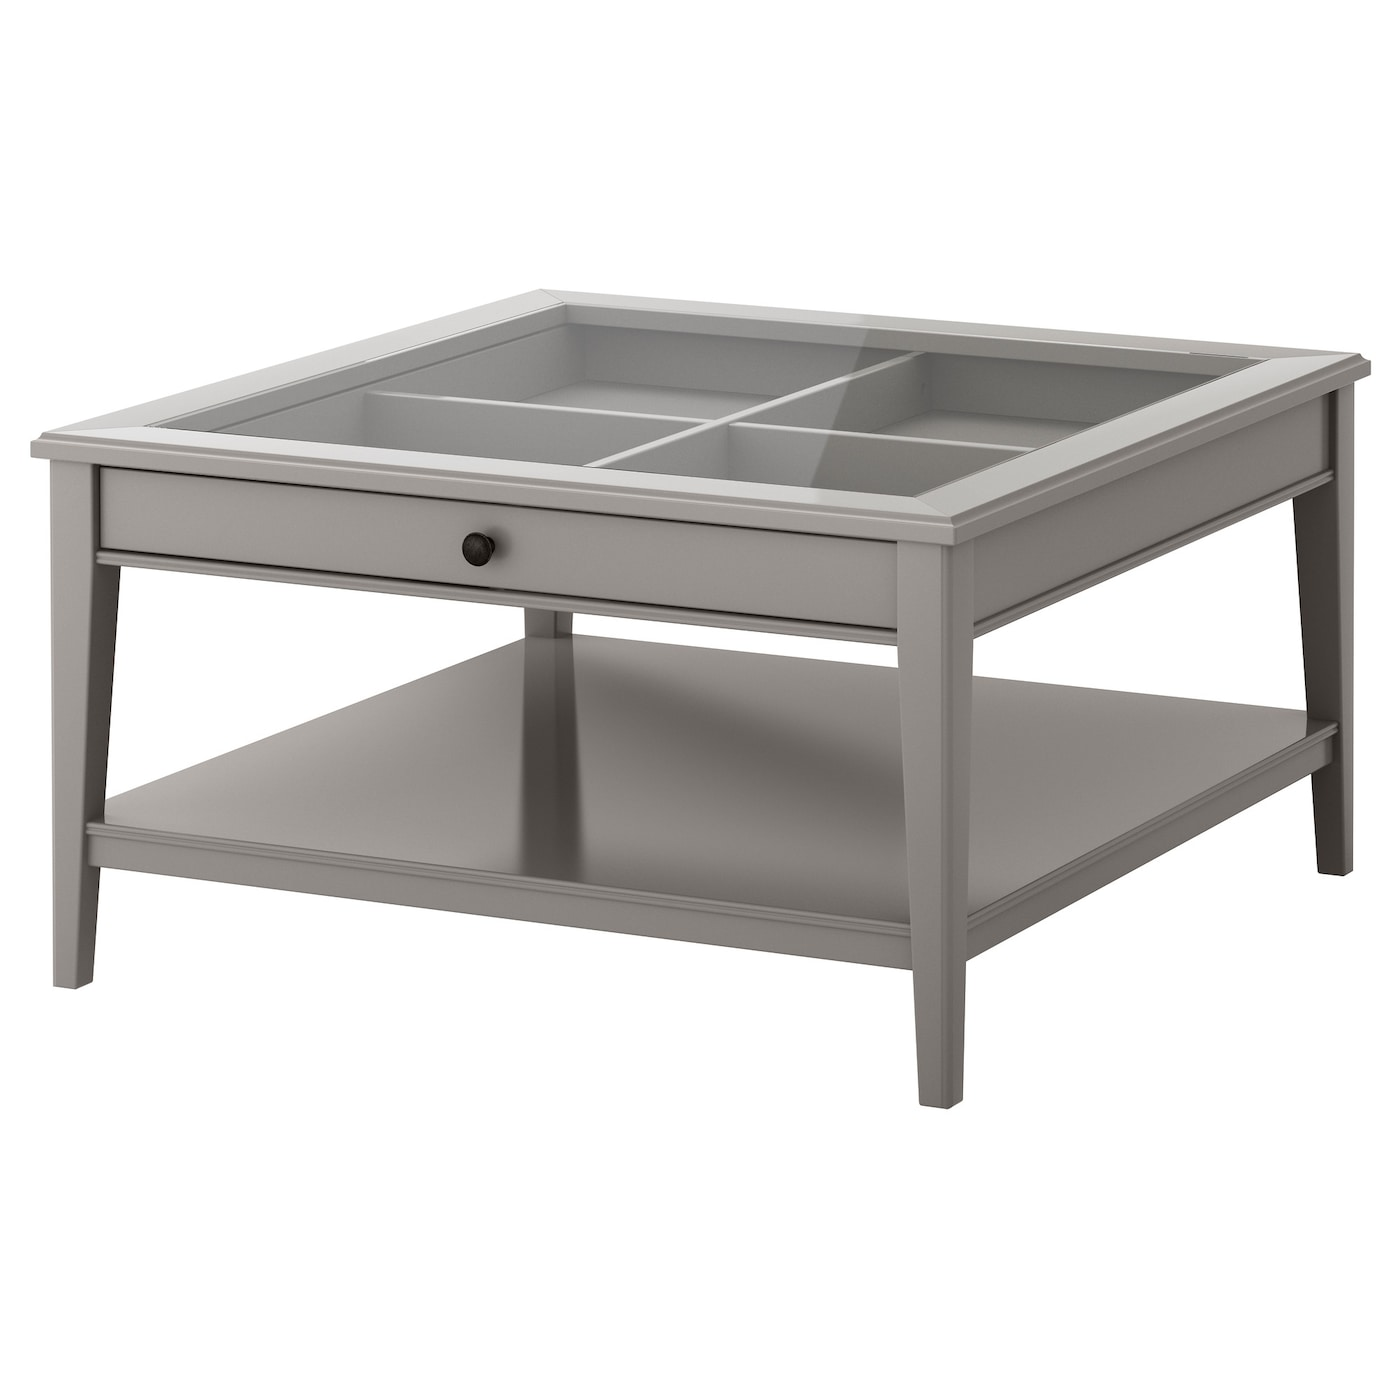 liatorp coffee table grey glass 93x93 cm ikea